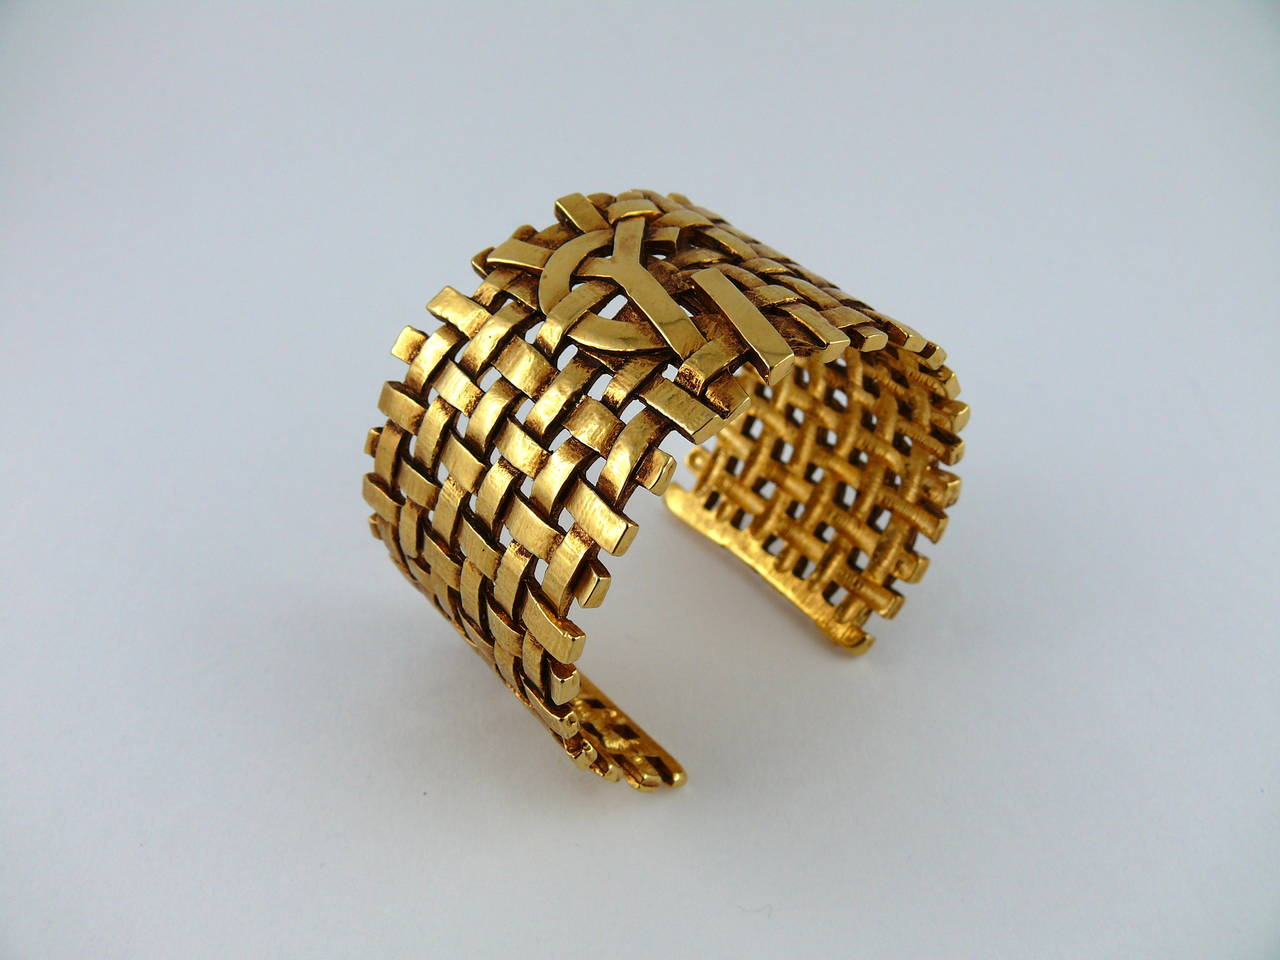 00b466ba2175 YVES SAINT LAURENT vintage openwork woven cuff bracelet featuring a large YSL  monogram. Gold toned